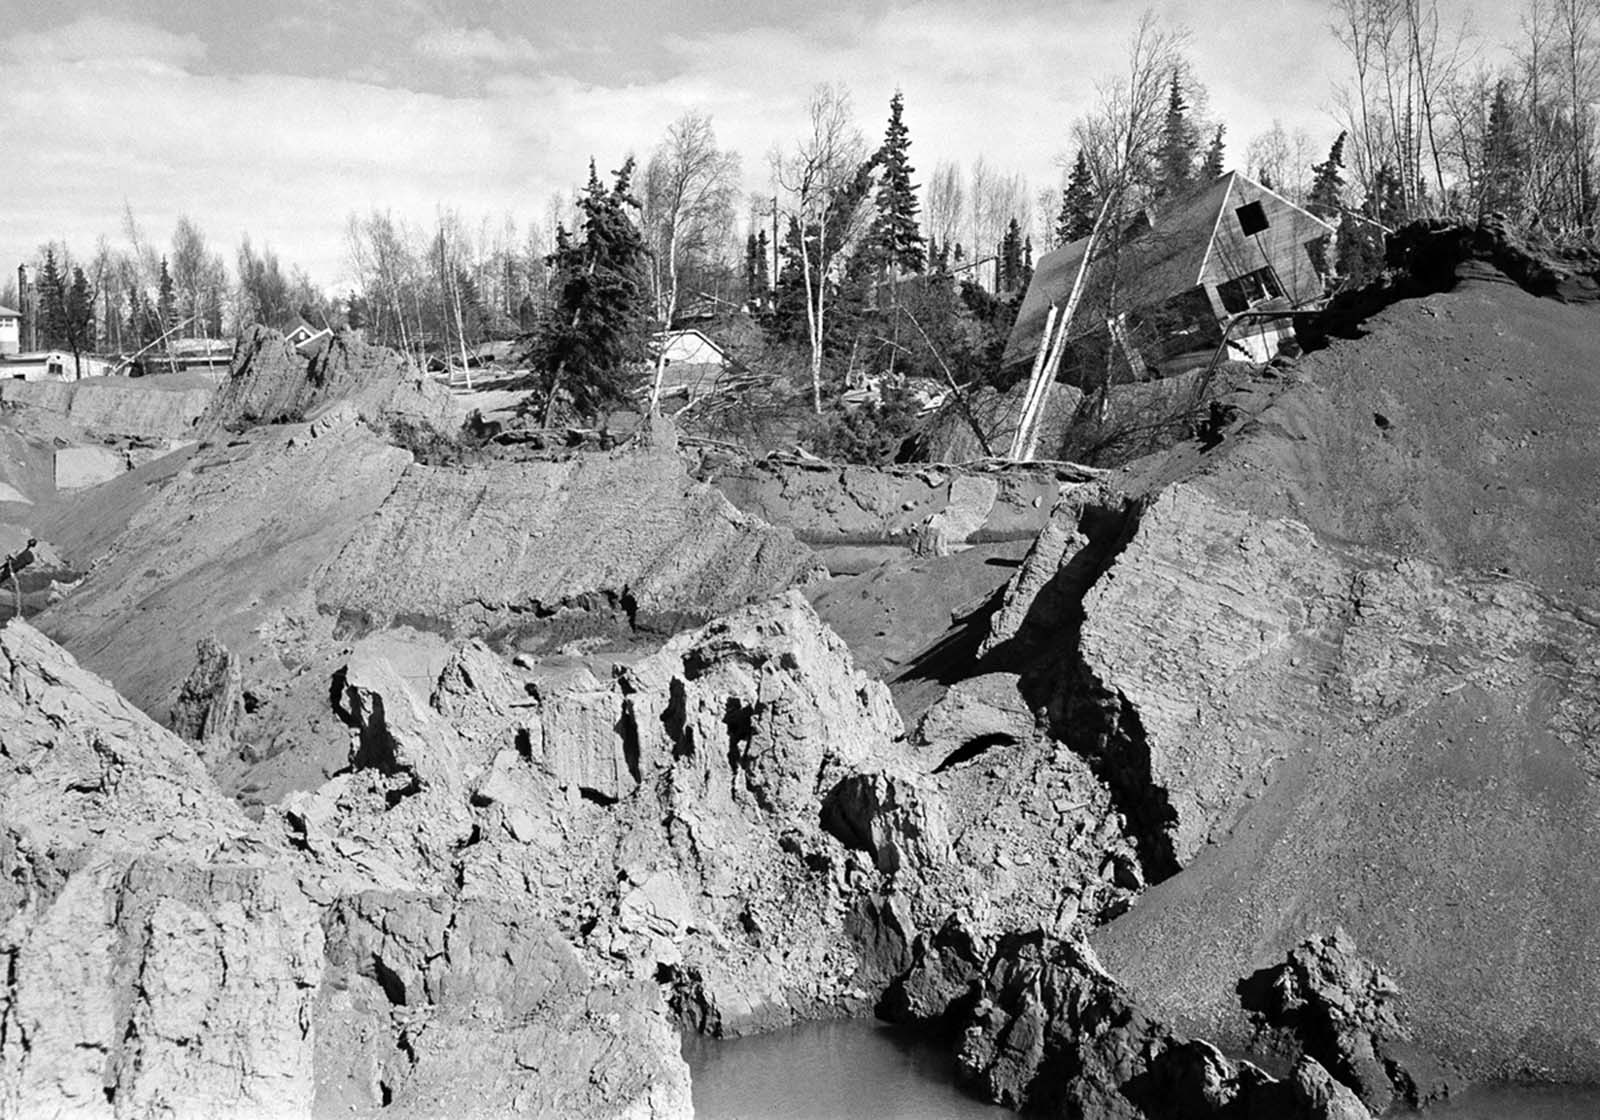 An earthquake-and-landslide-damaged neighborhood in Anchorage, Alaska.